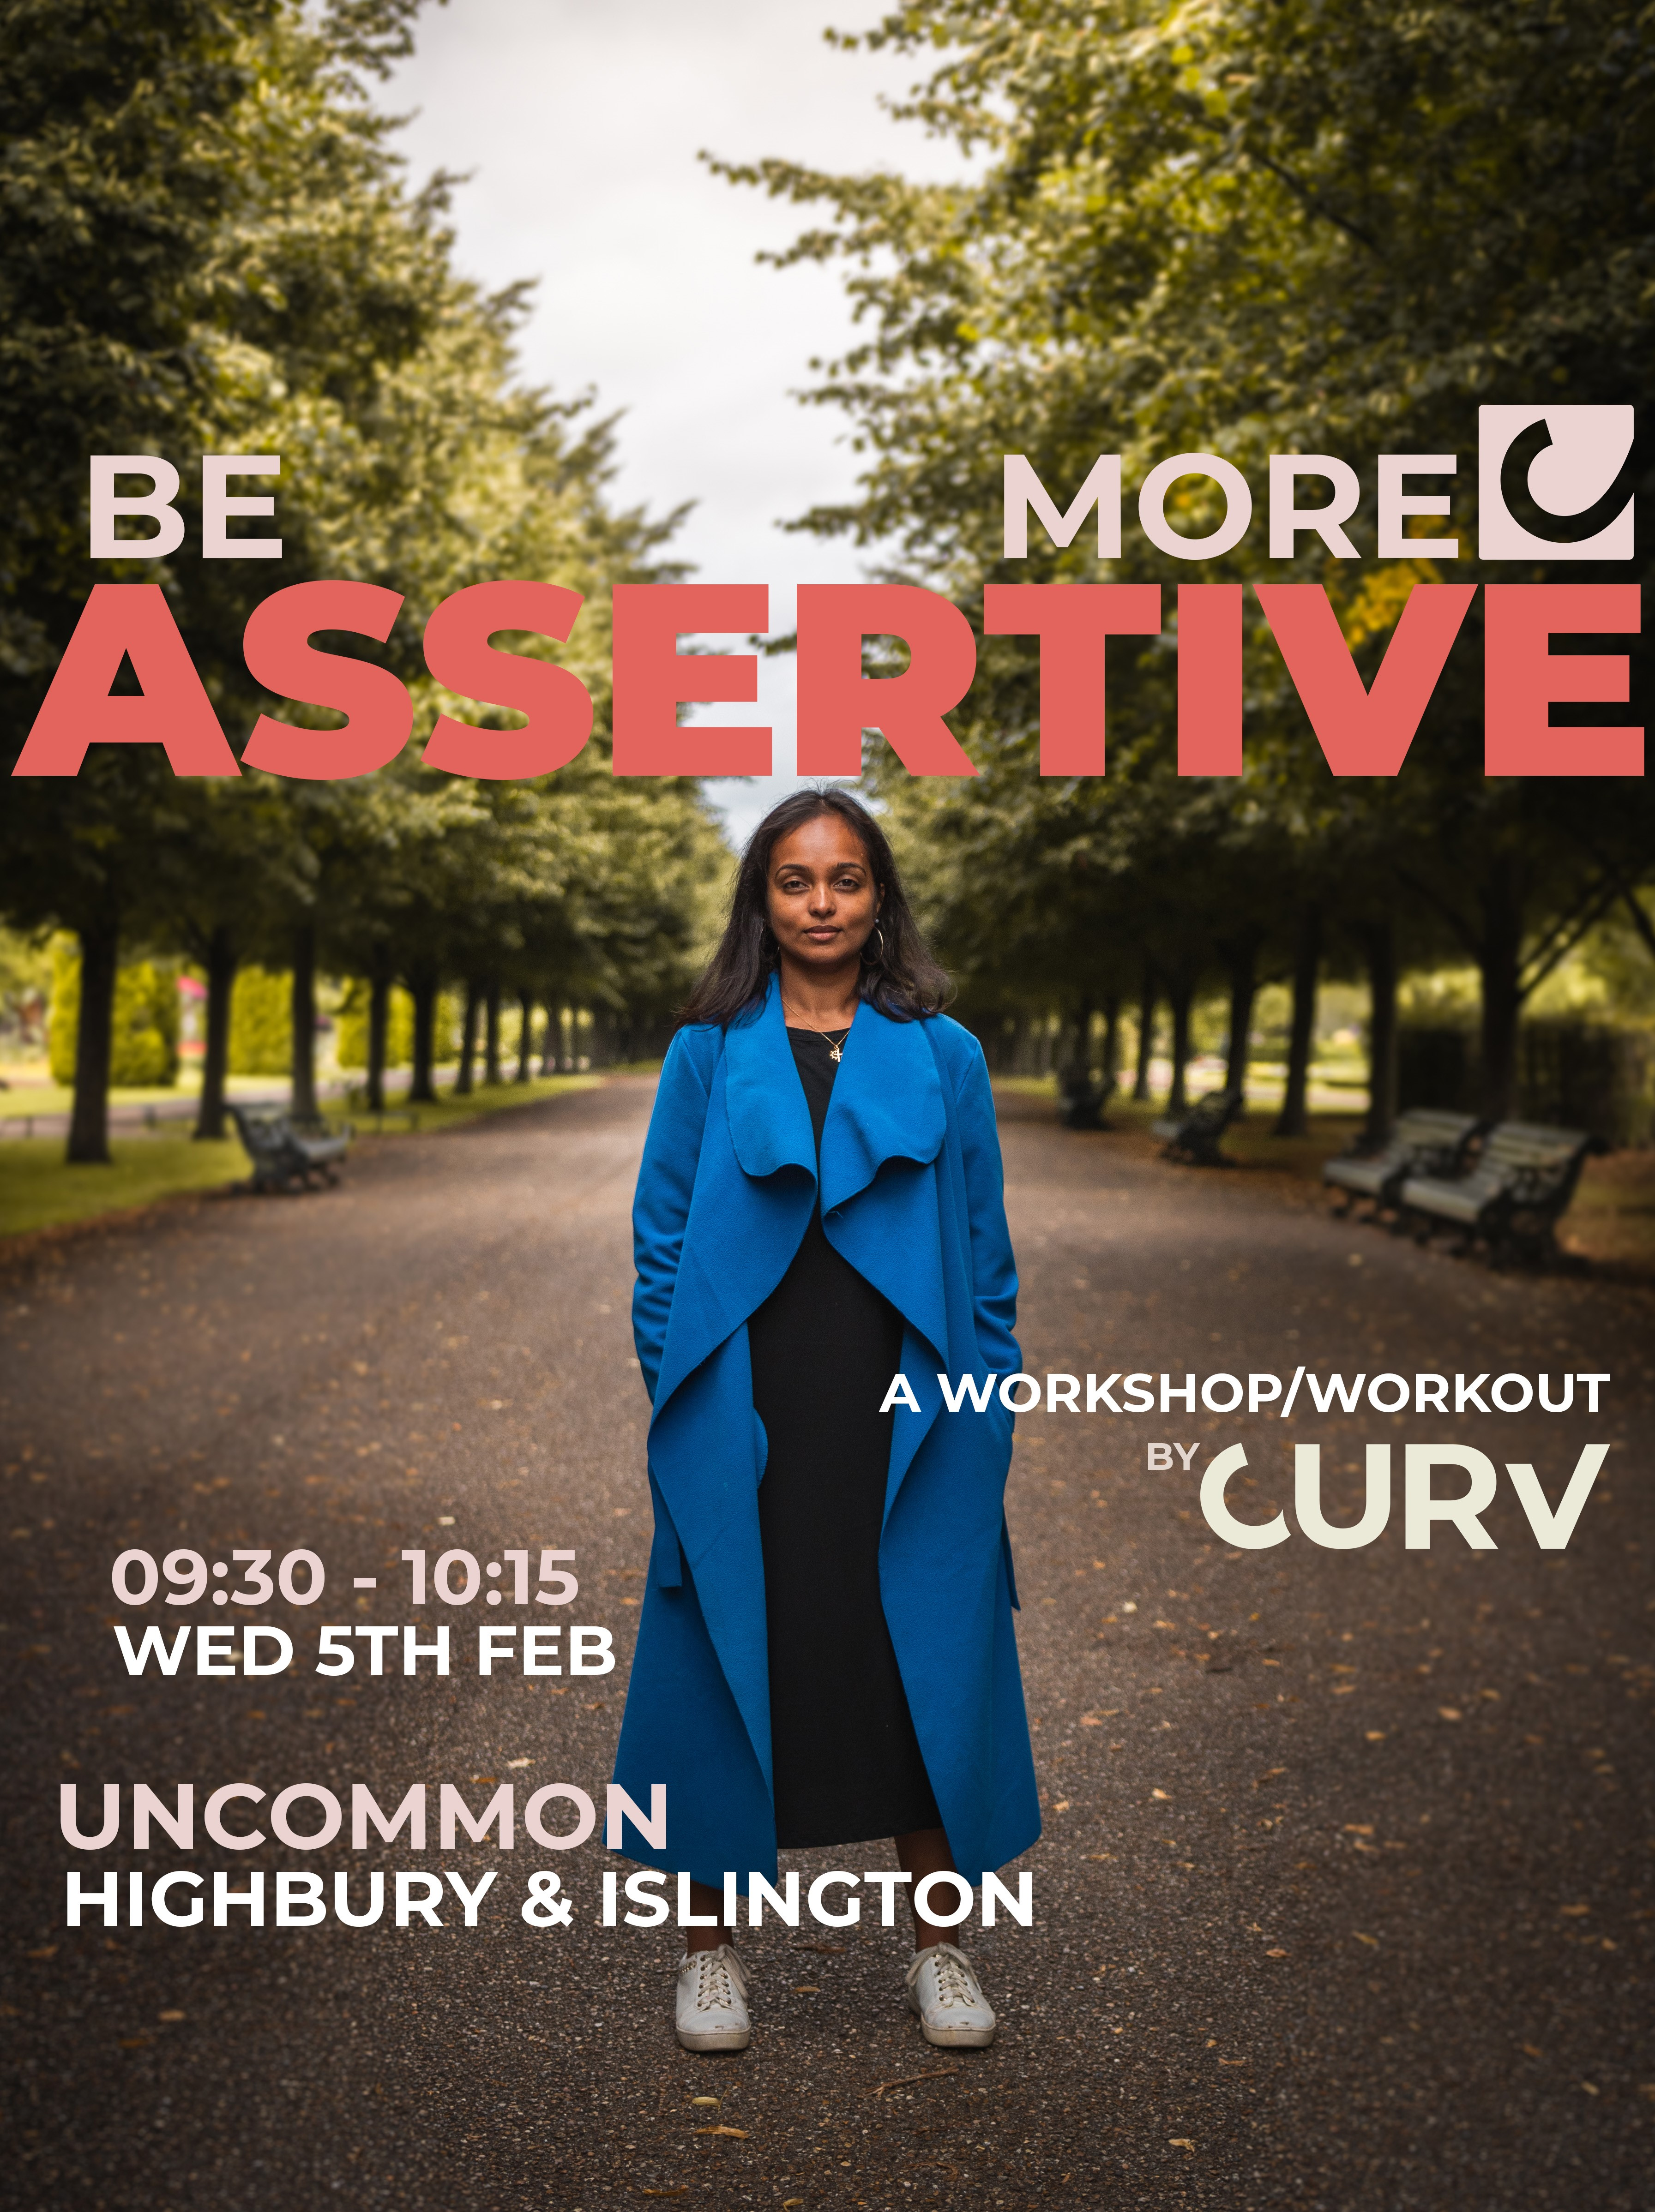 BE MORE ASSERTIVE - a workshop / workout by CURV